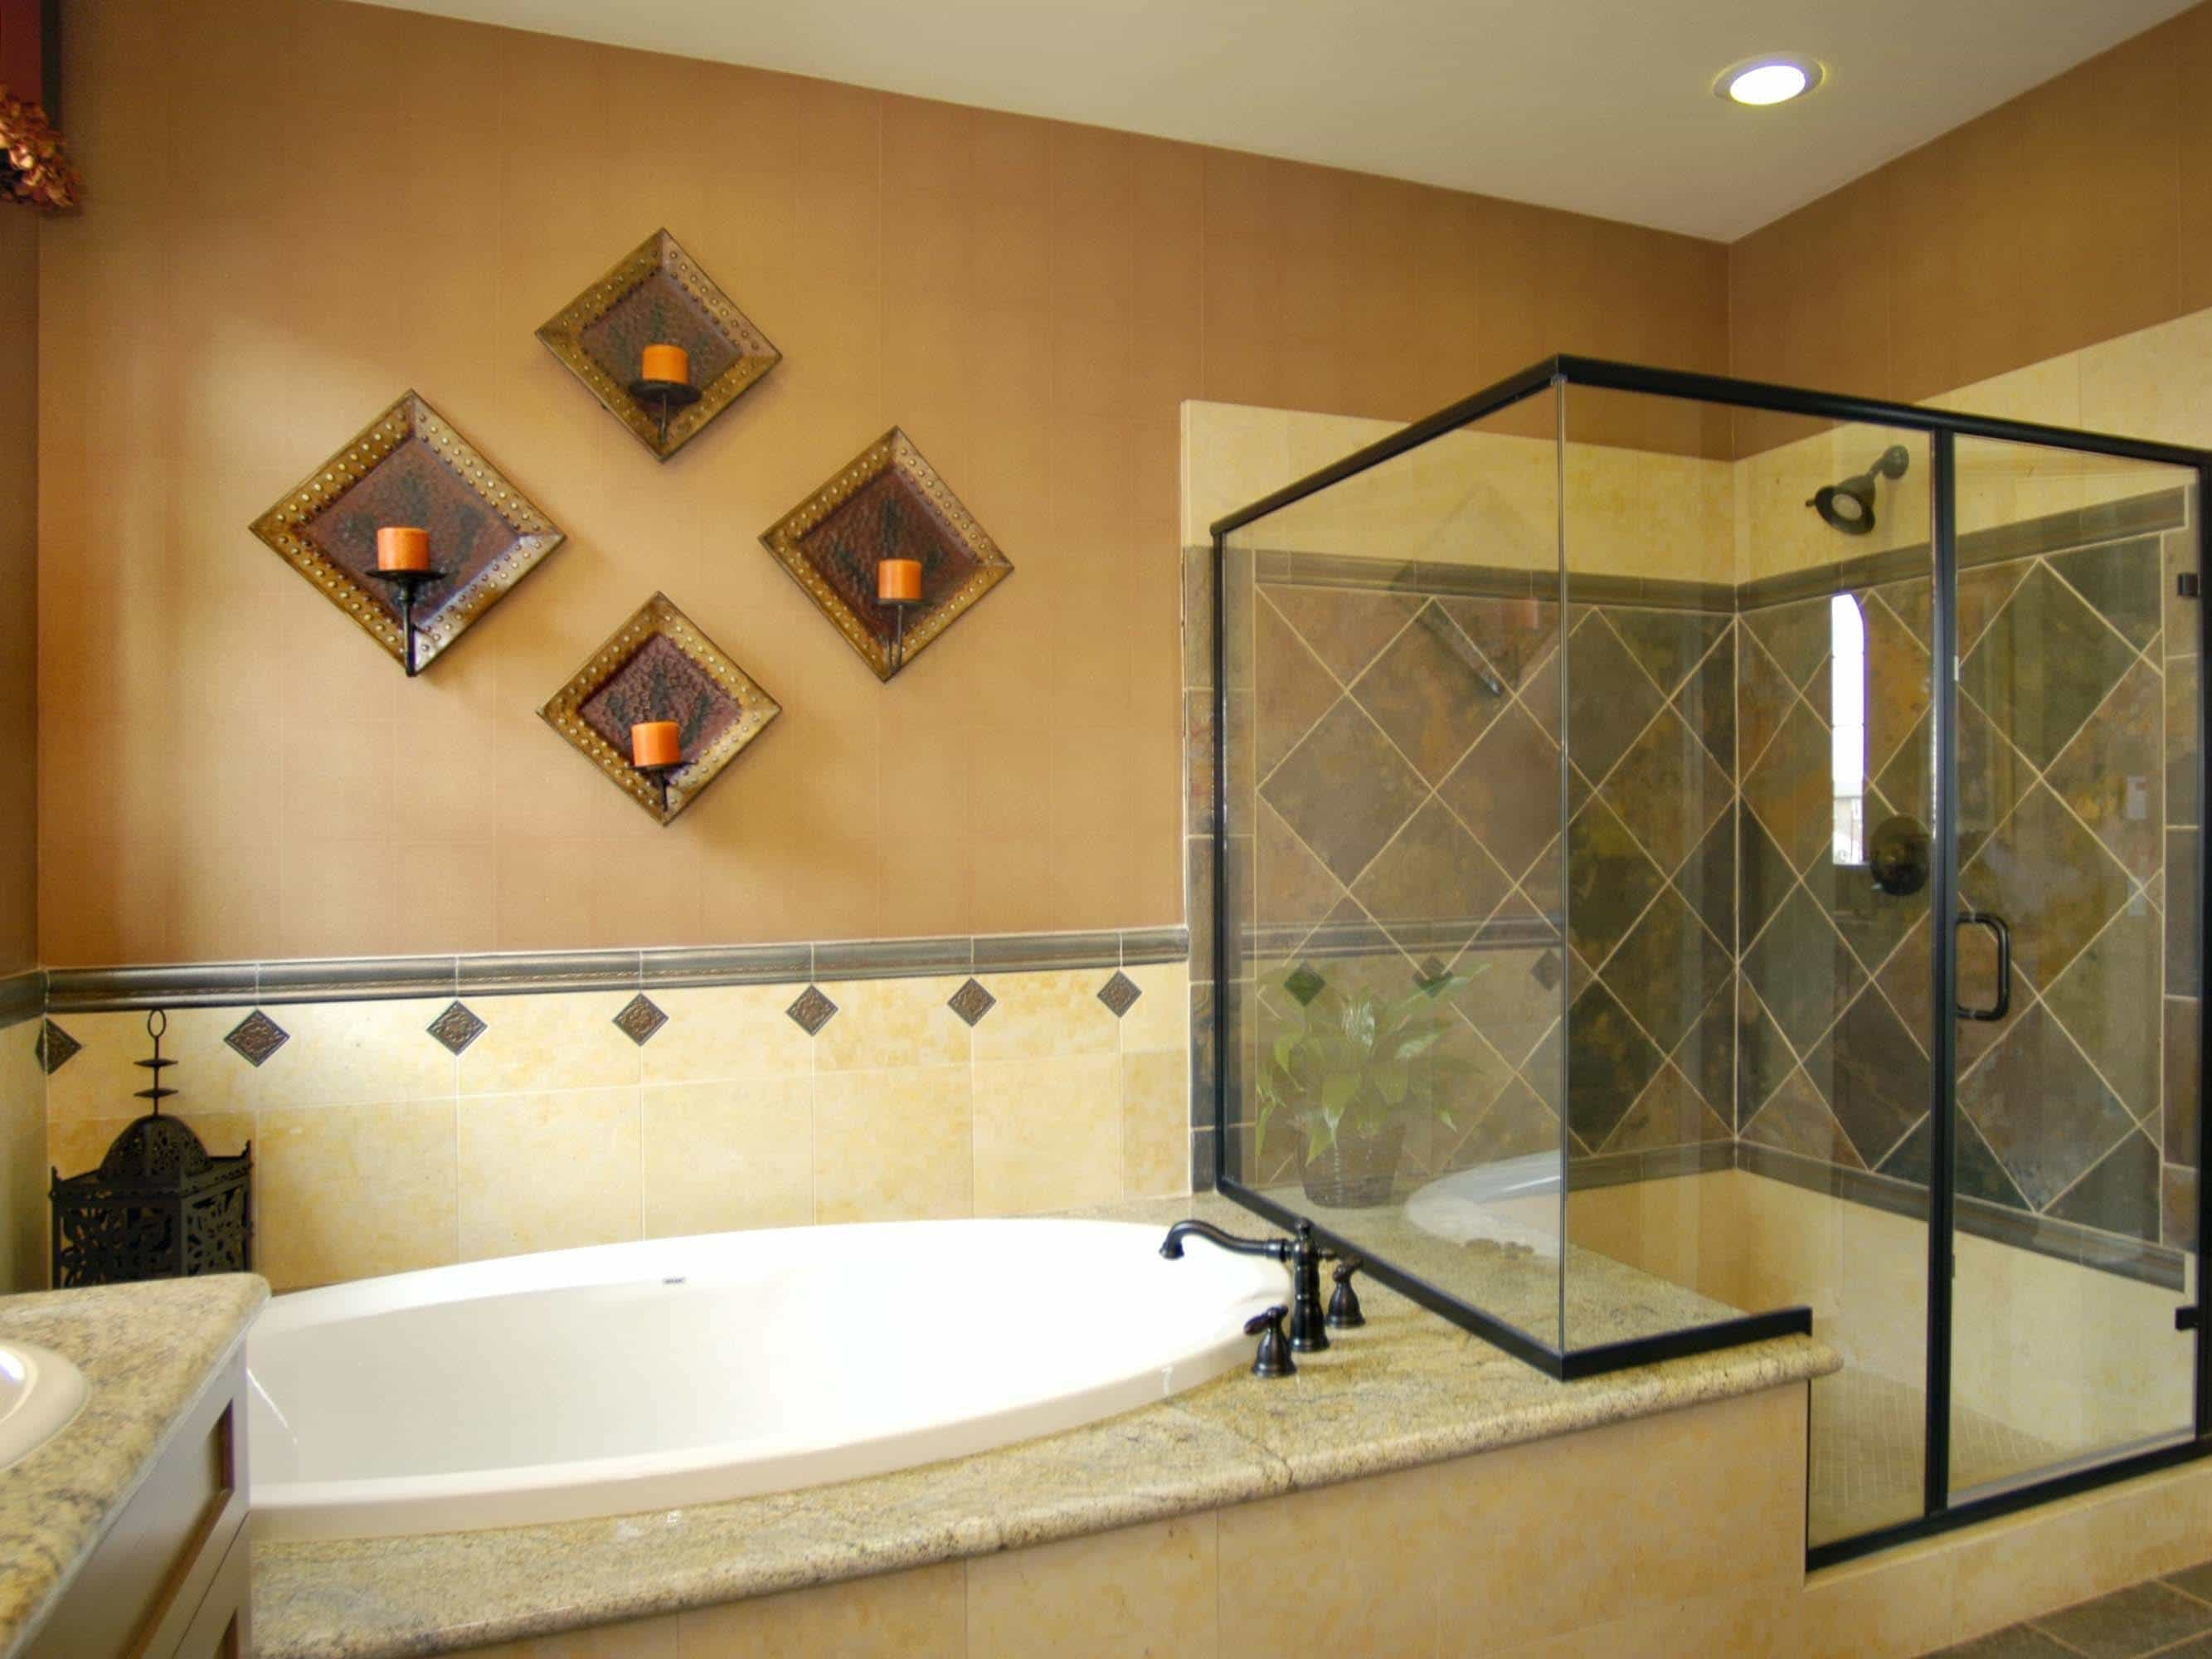 Old World Style Shower And Tub Combo (View 12 of 16)